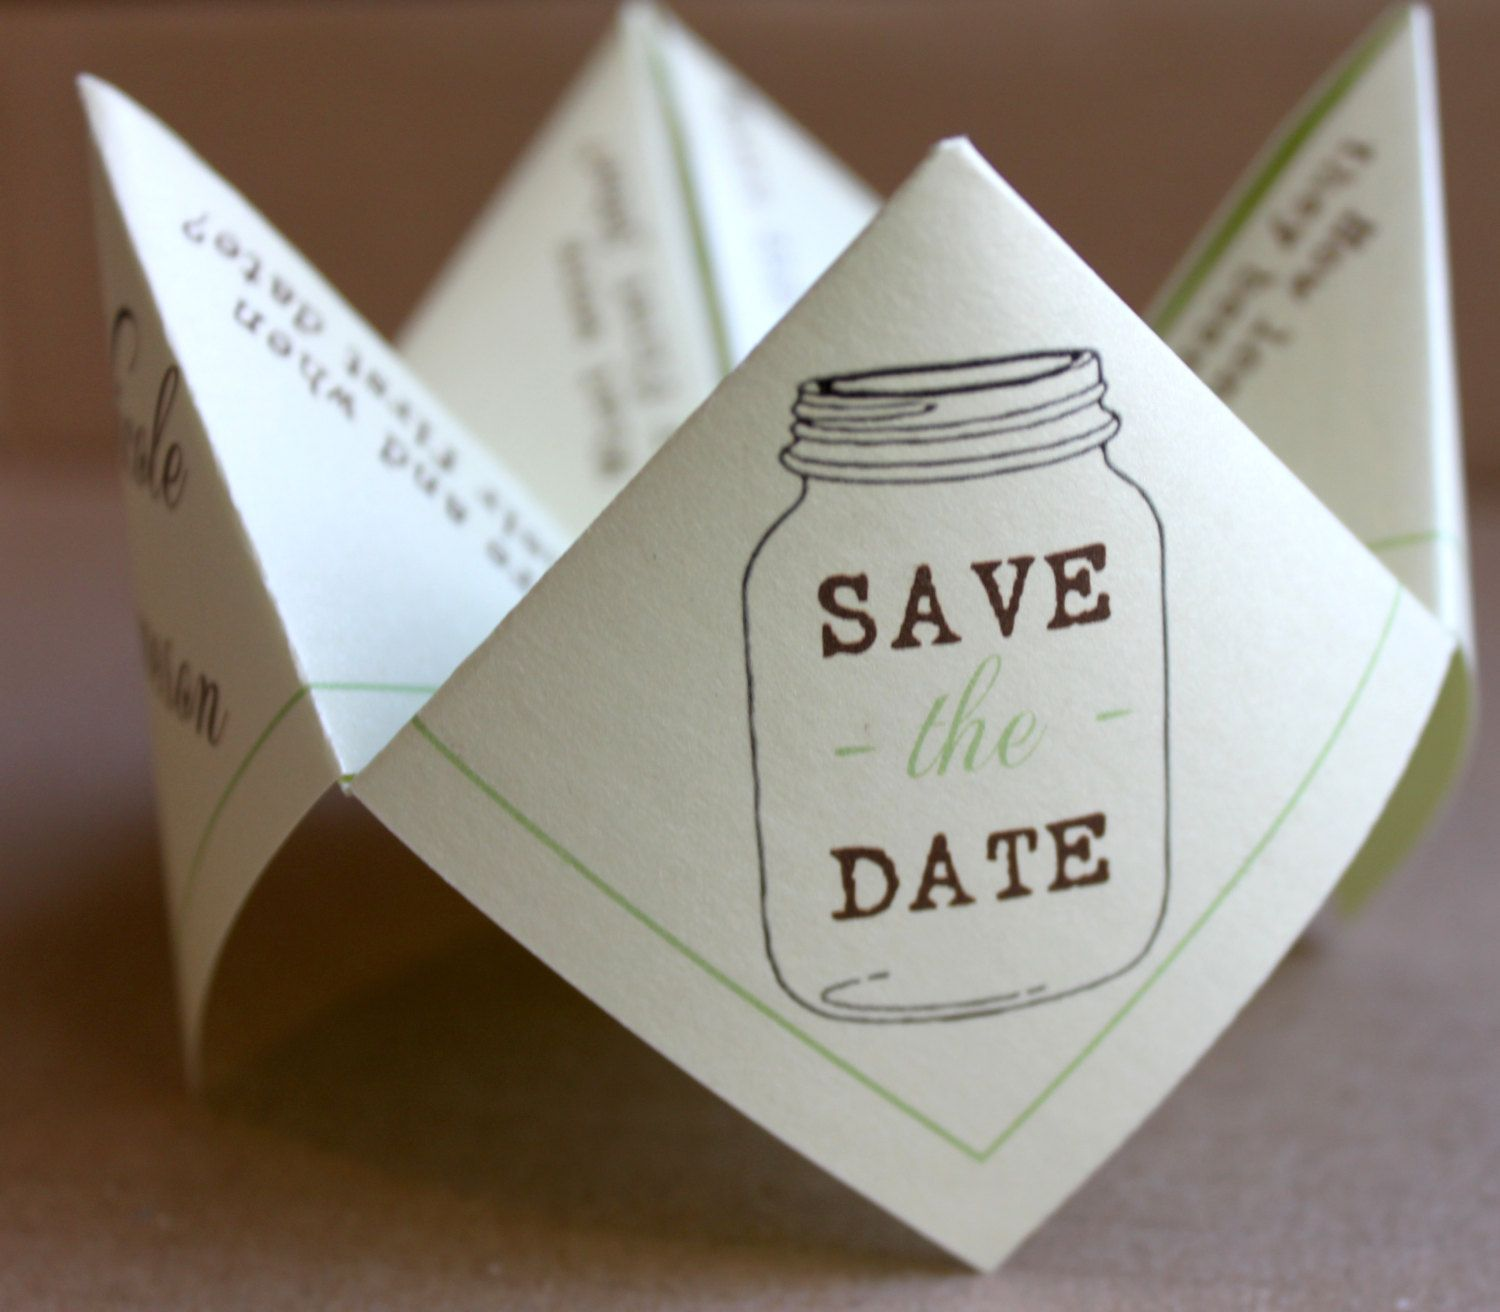 15 Brilliantly Creative Save the Date Ideas | Creative ...